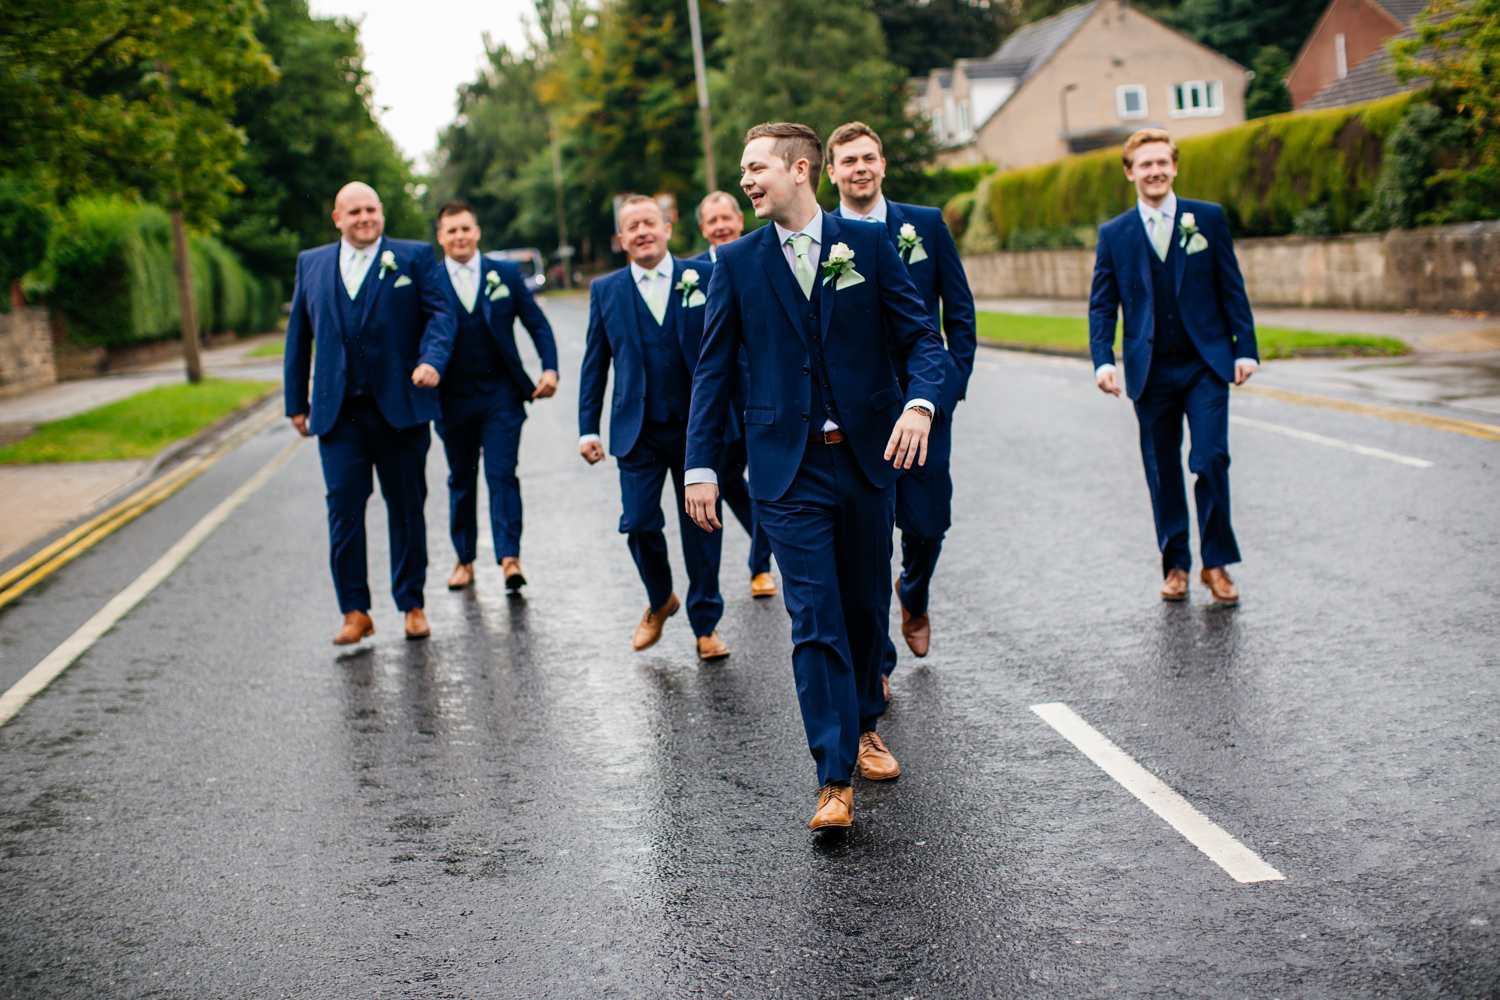 wedding photographers in sheffield8.jpg